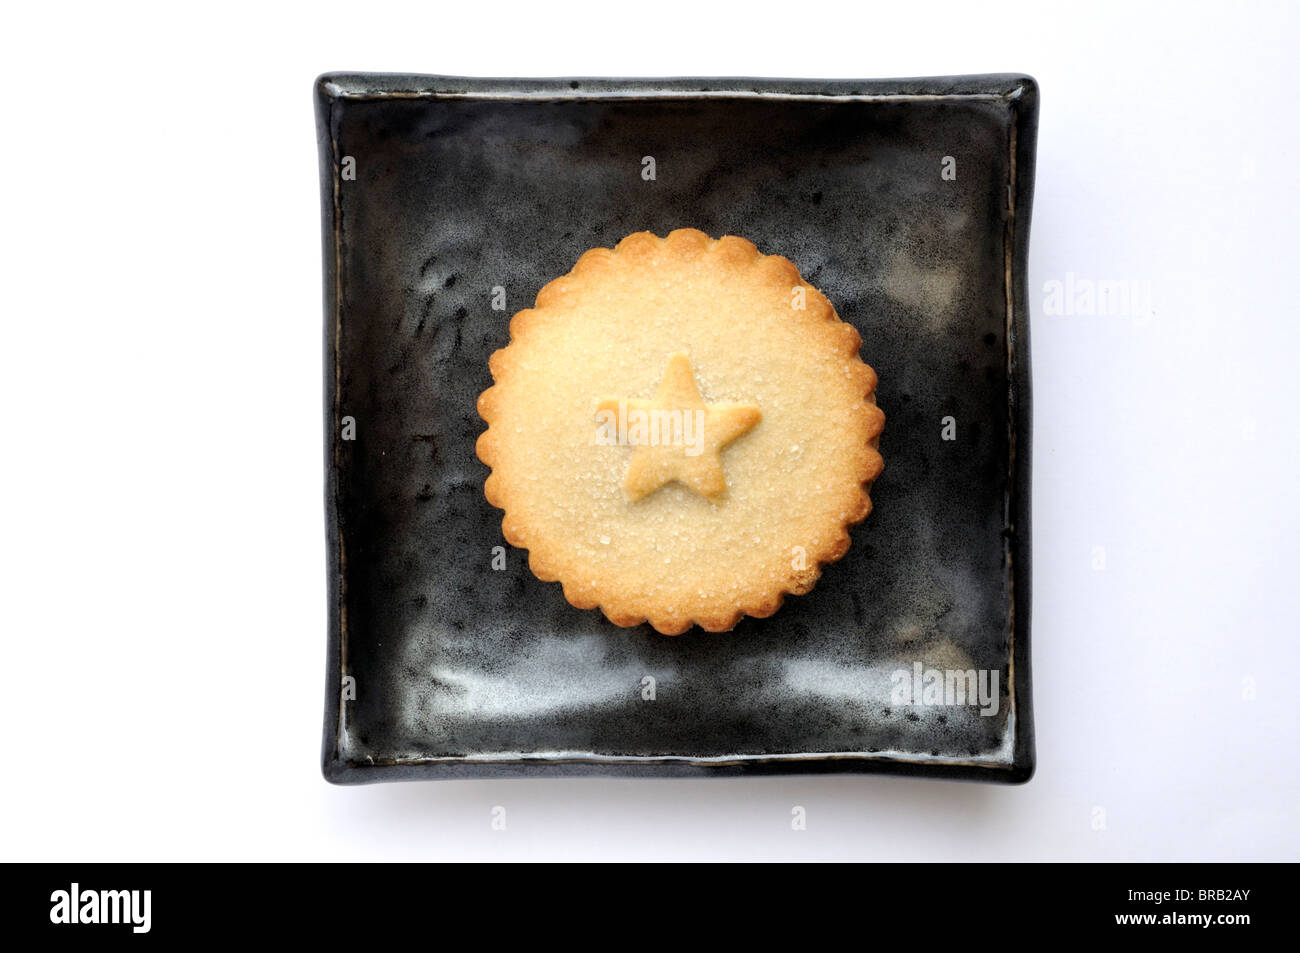 One Christmas mince pie on black square plate. - Stock Image